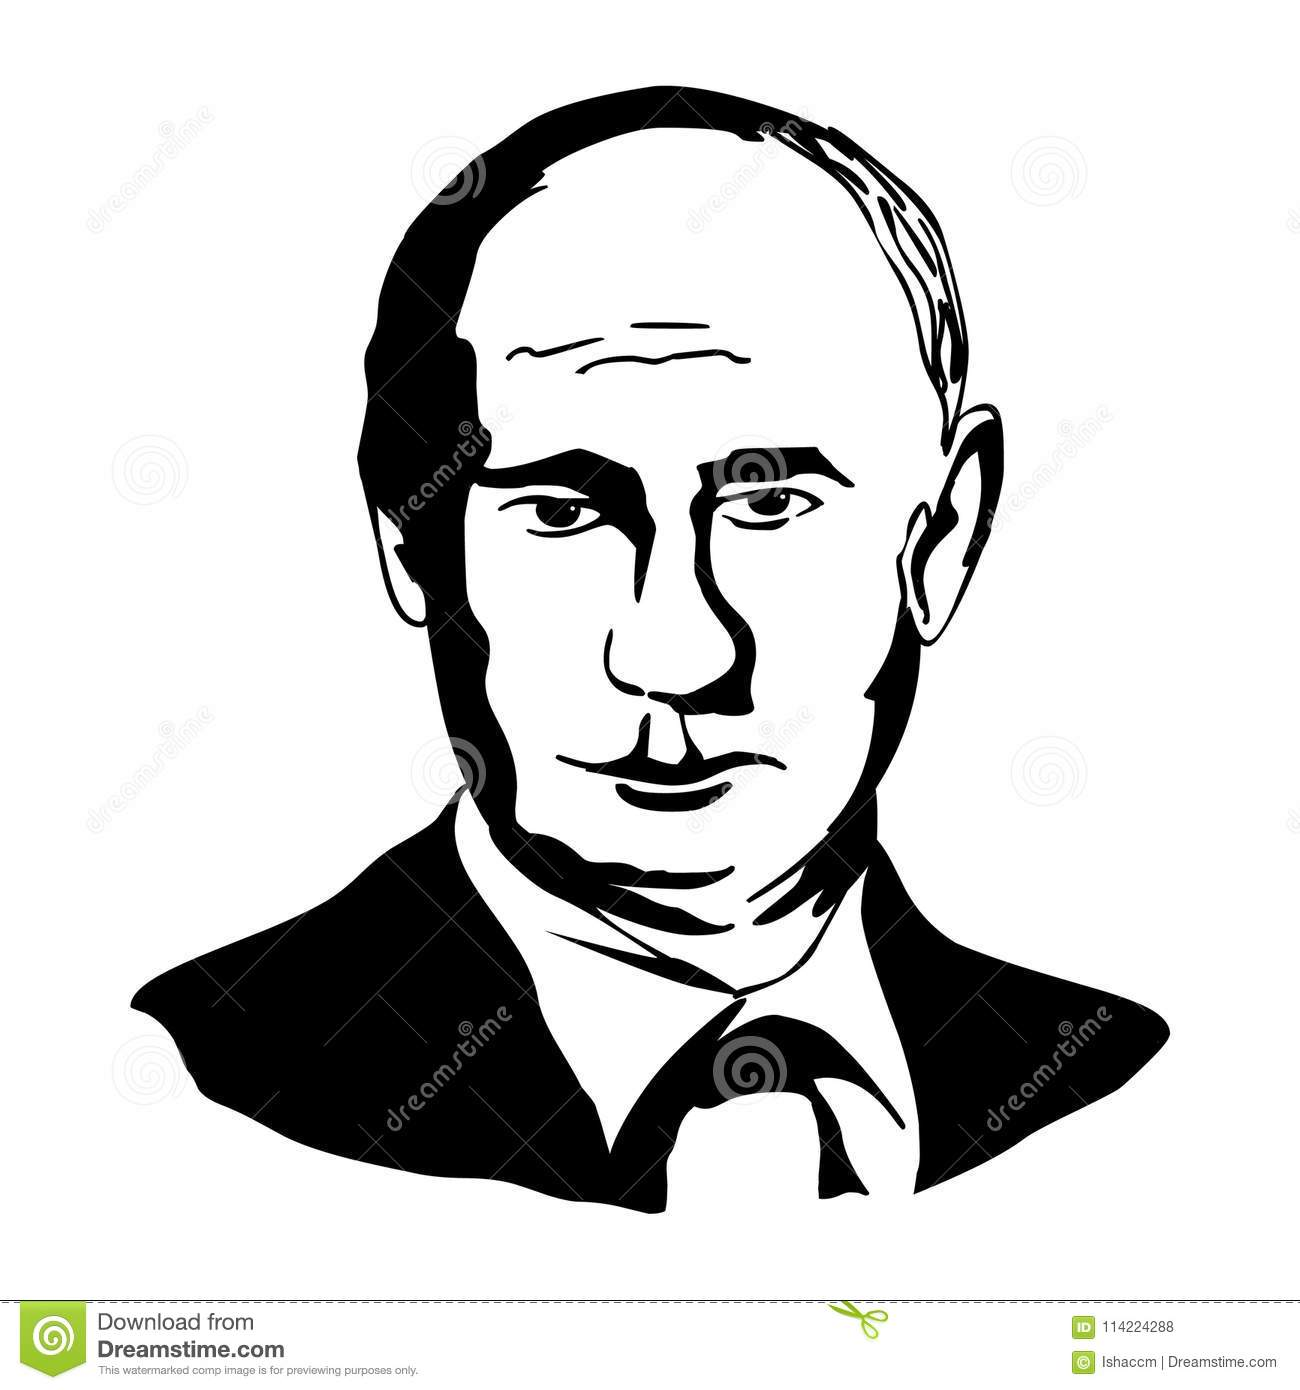 Drawn by Vladimir Putin appeared on the cover of New Yorker 03/06/2017 93